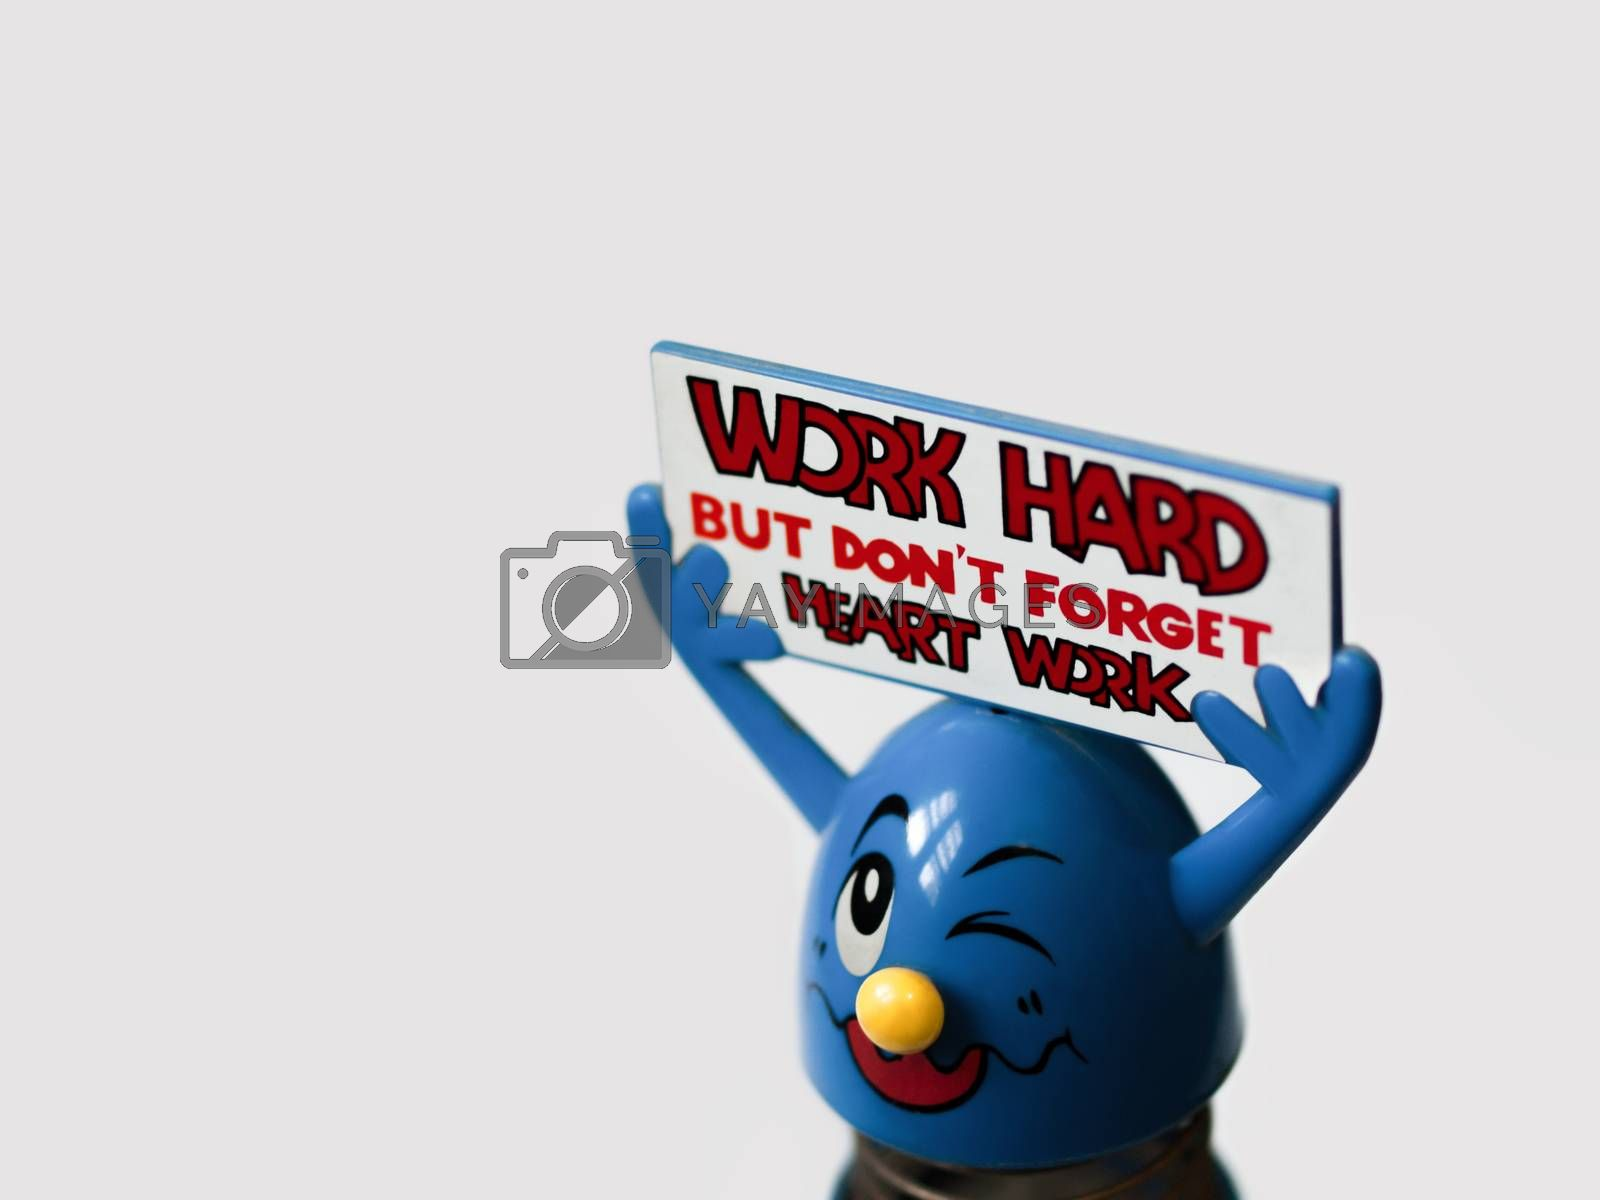 'WORK HARD BUT DON'T FORGET HEART WORK' (COLOR)